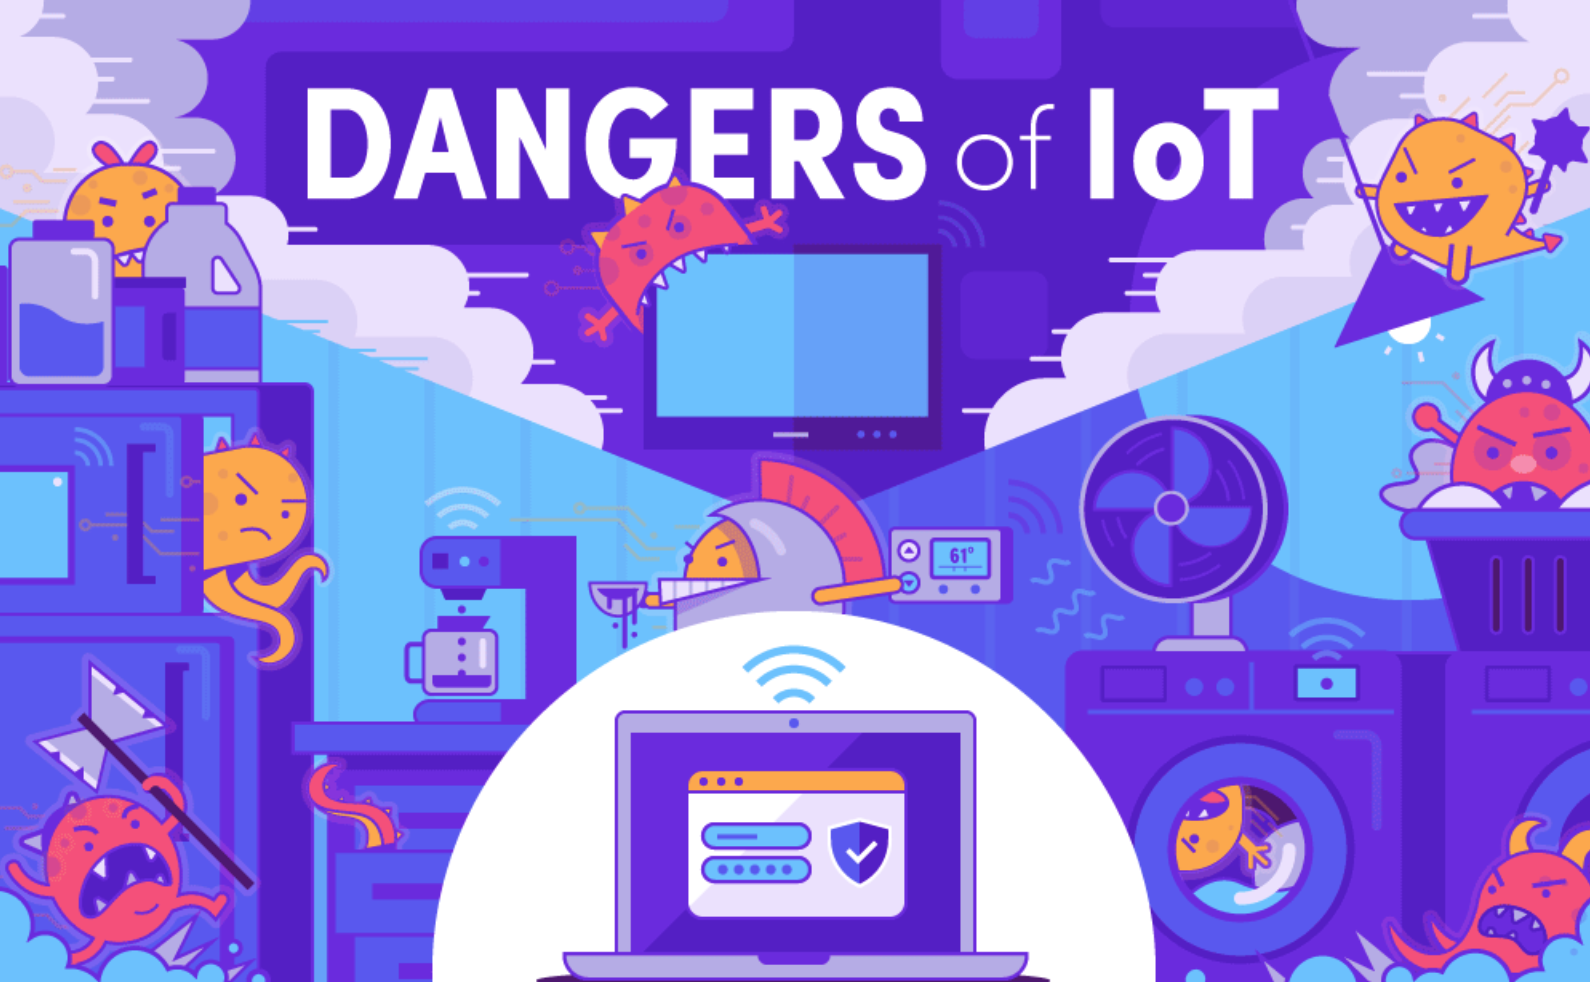 /the-dangerous-state-of-iot-security-e12d27552145 feature image